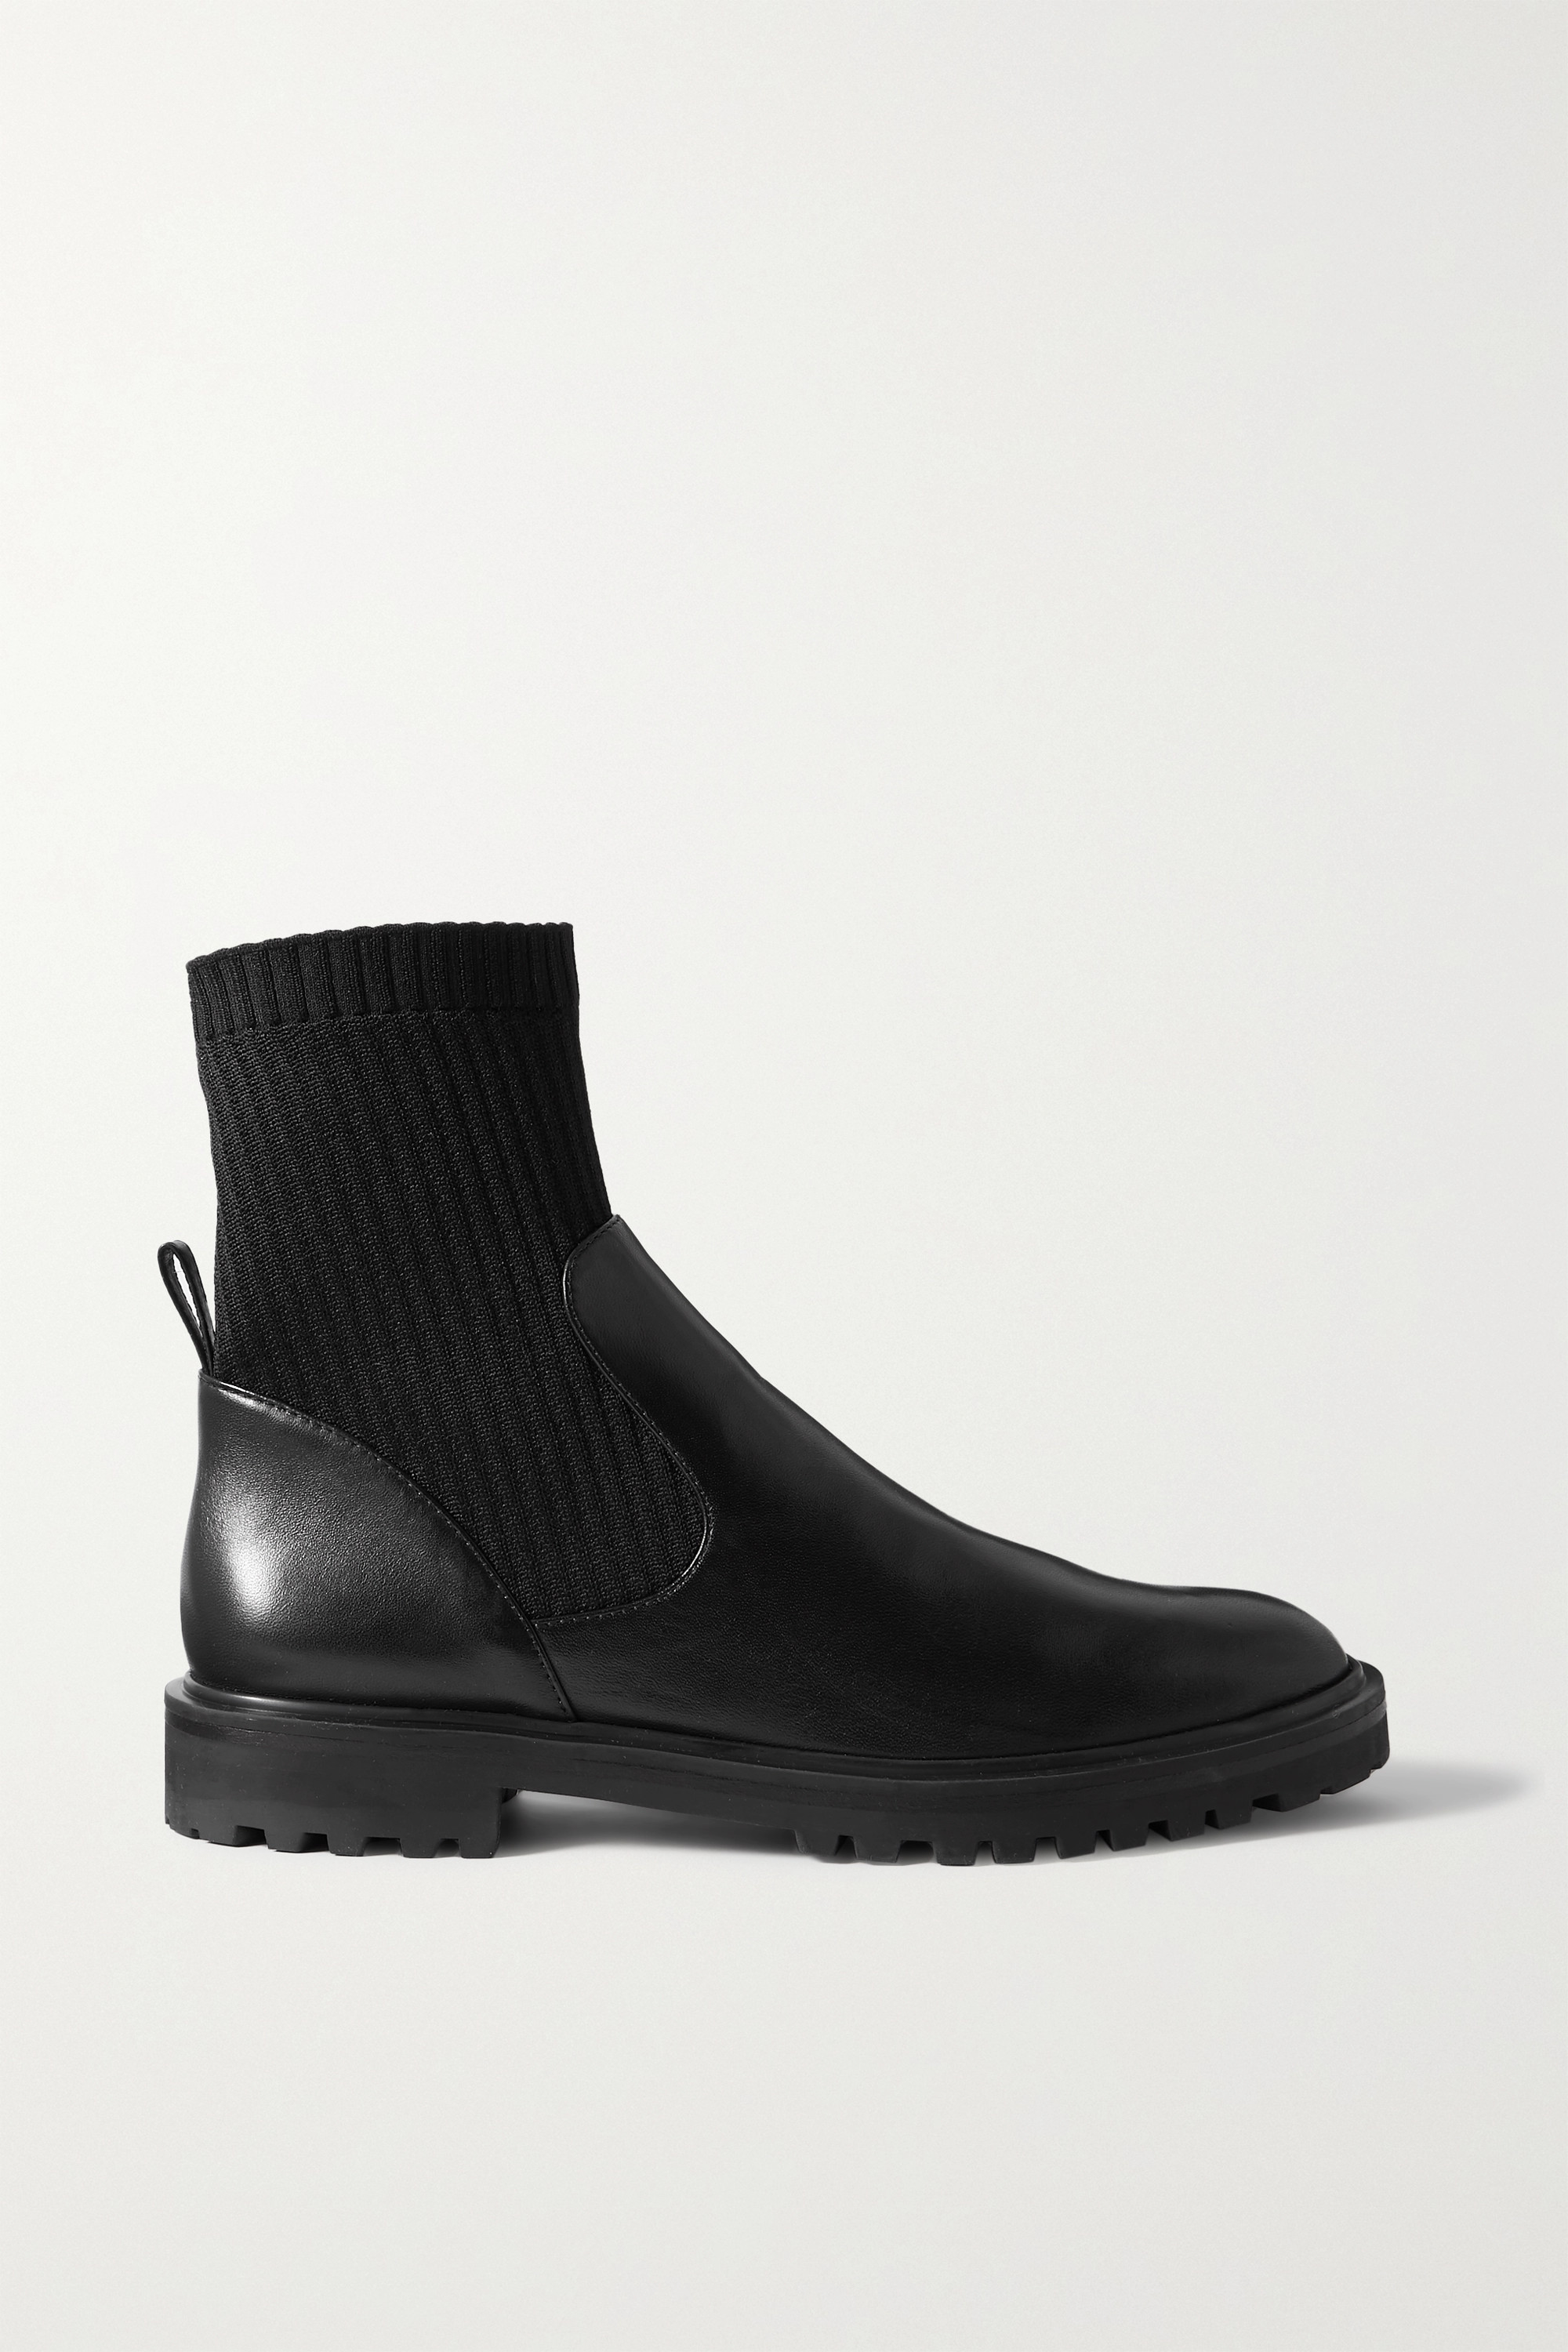 ribbed-knit ankle boots   Porte